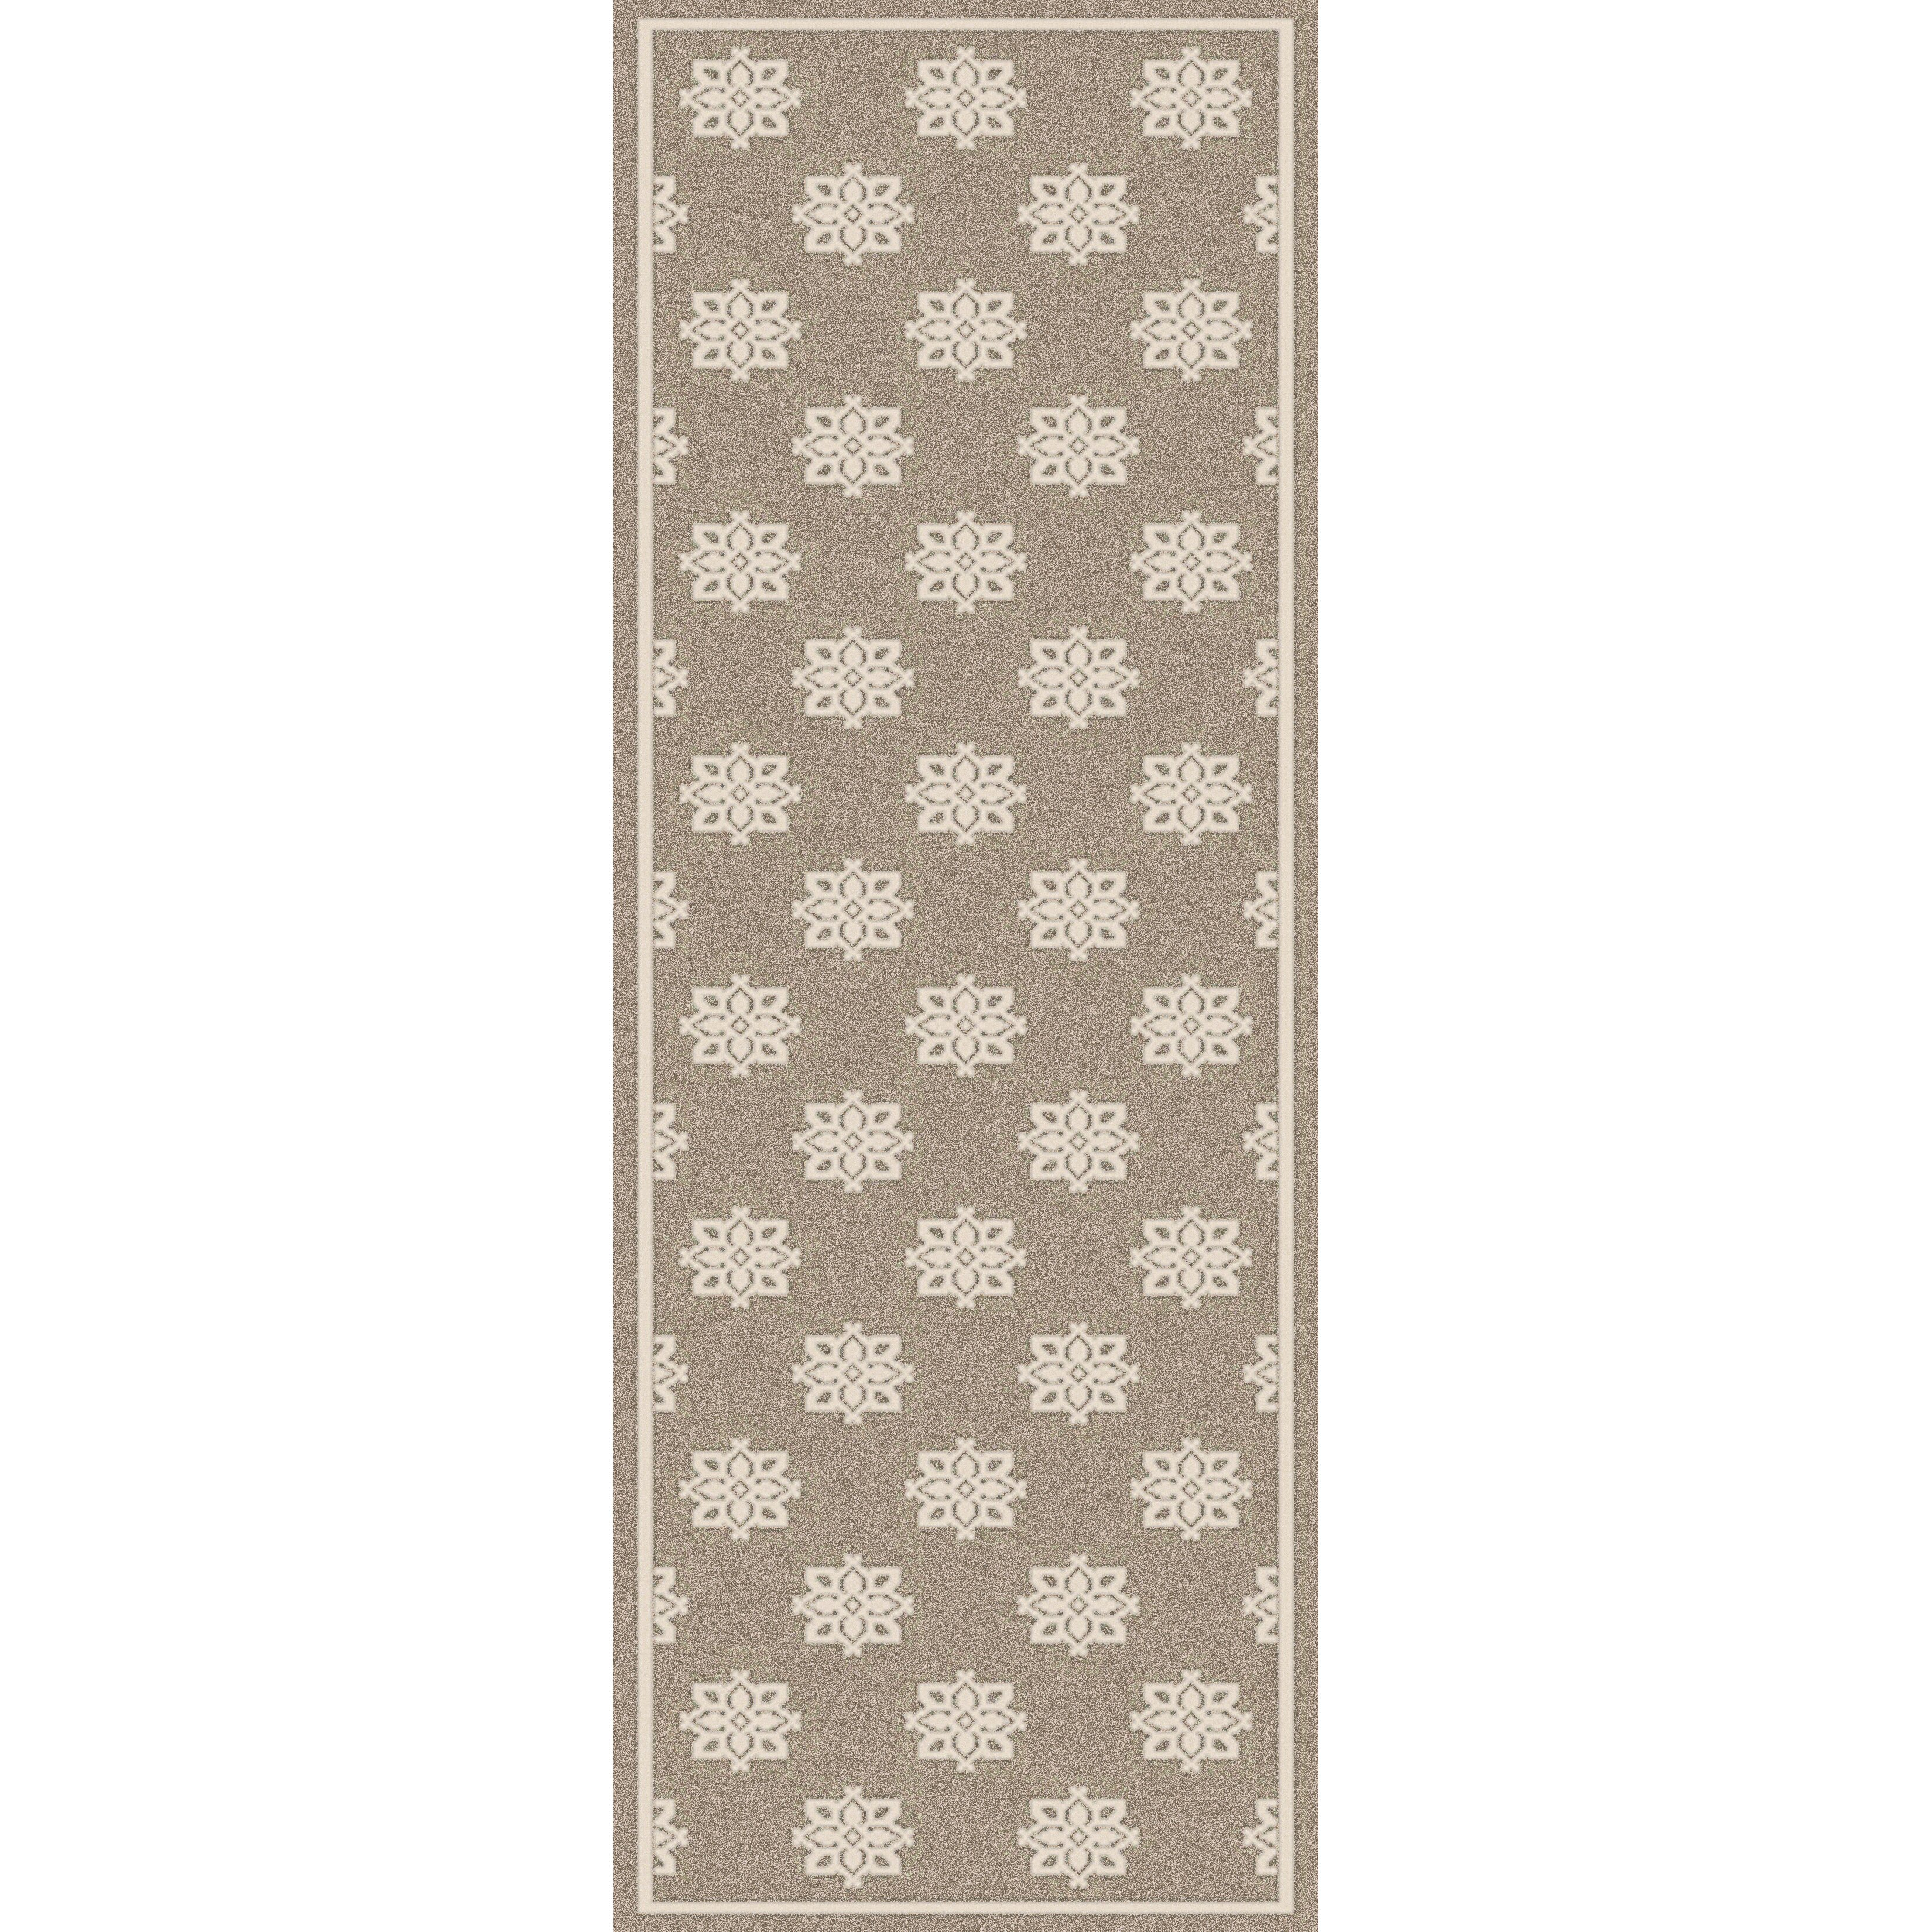 Damask Taupe Rug: Surya Alfresco Beige/Taupe Damask Area Rug & Reviews